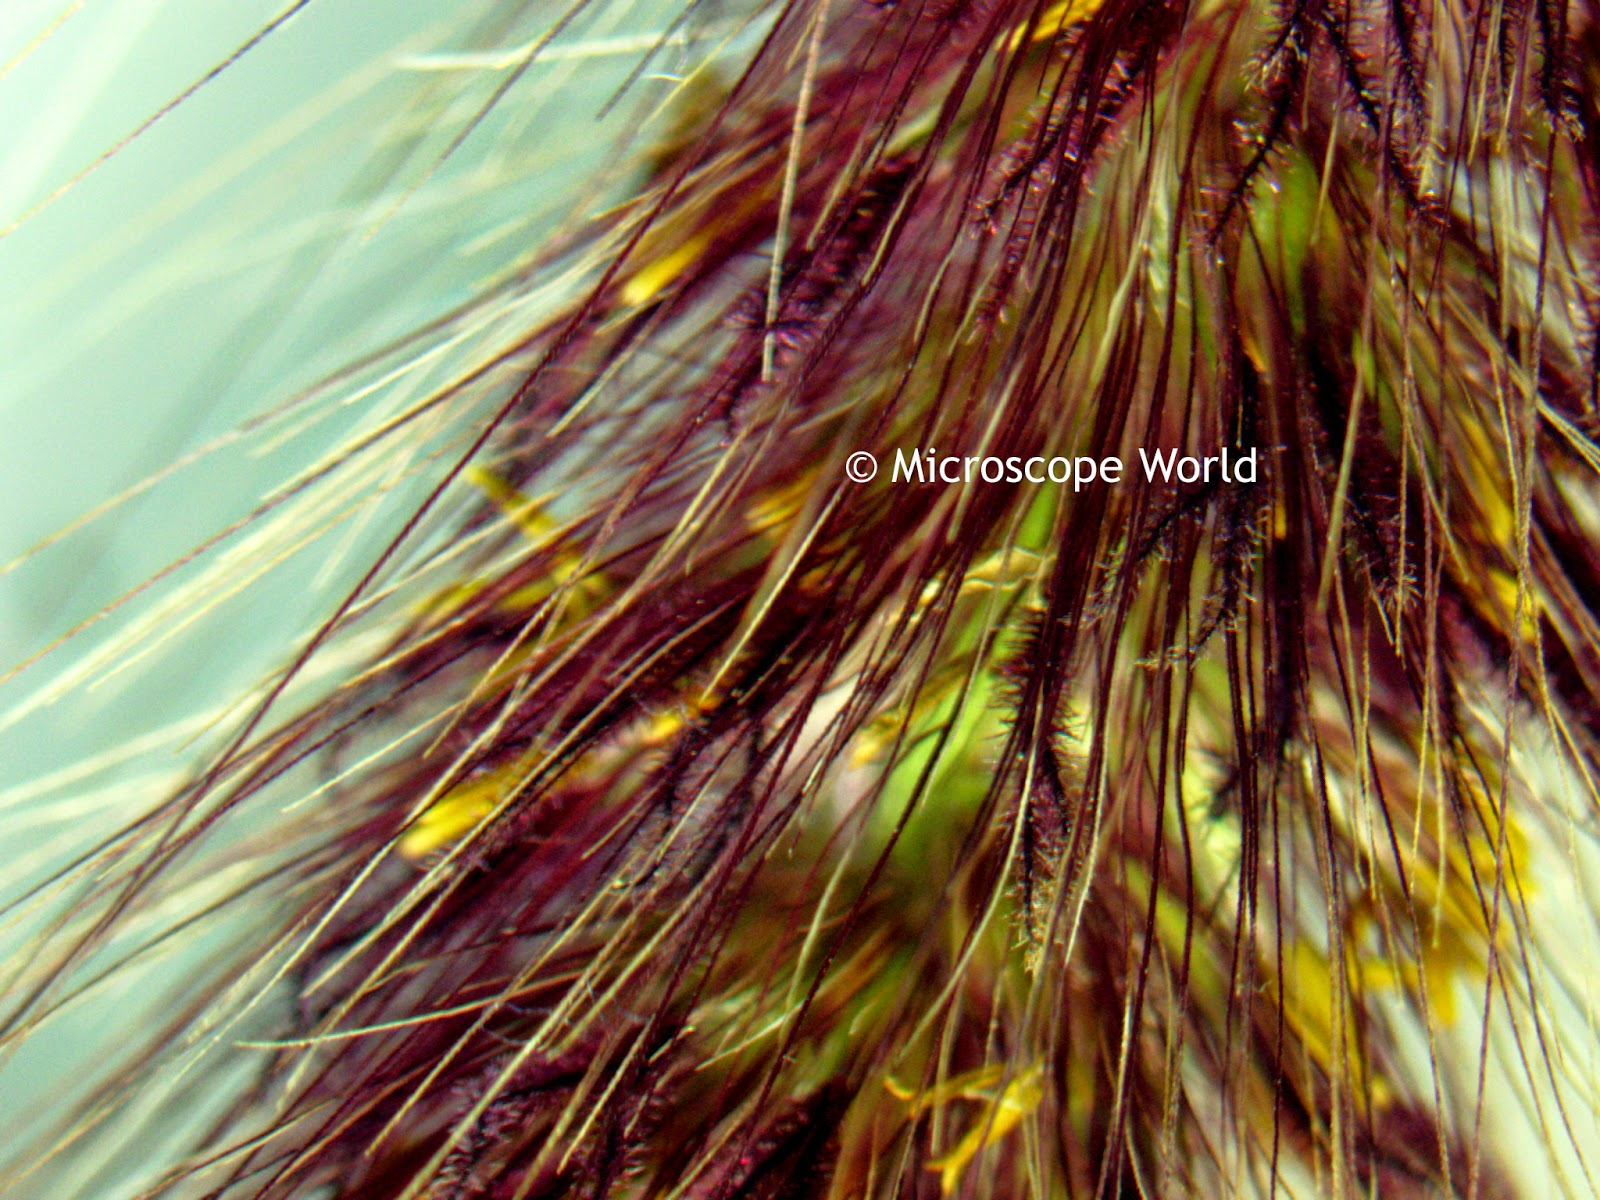 microscope image of cattail